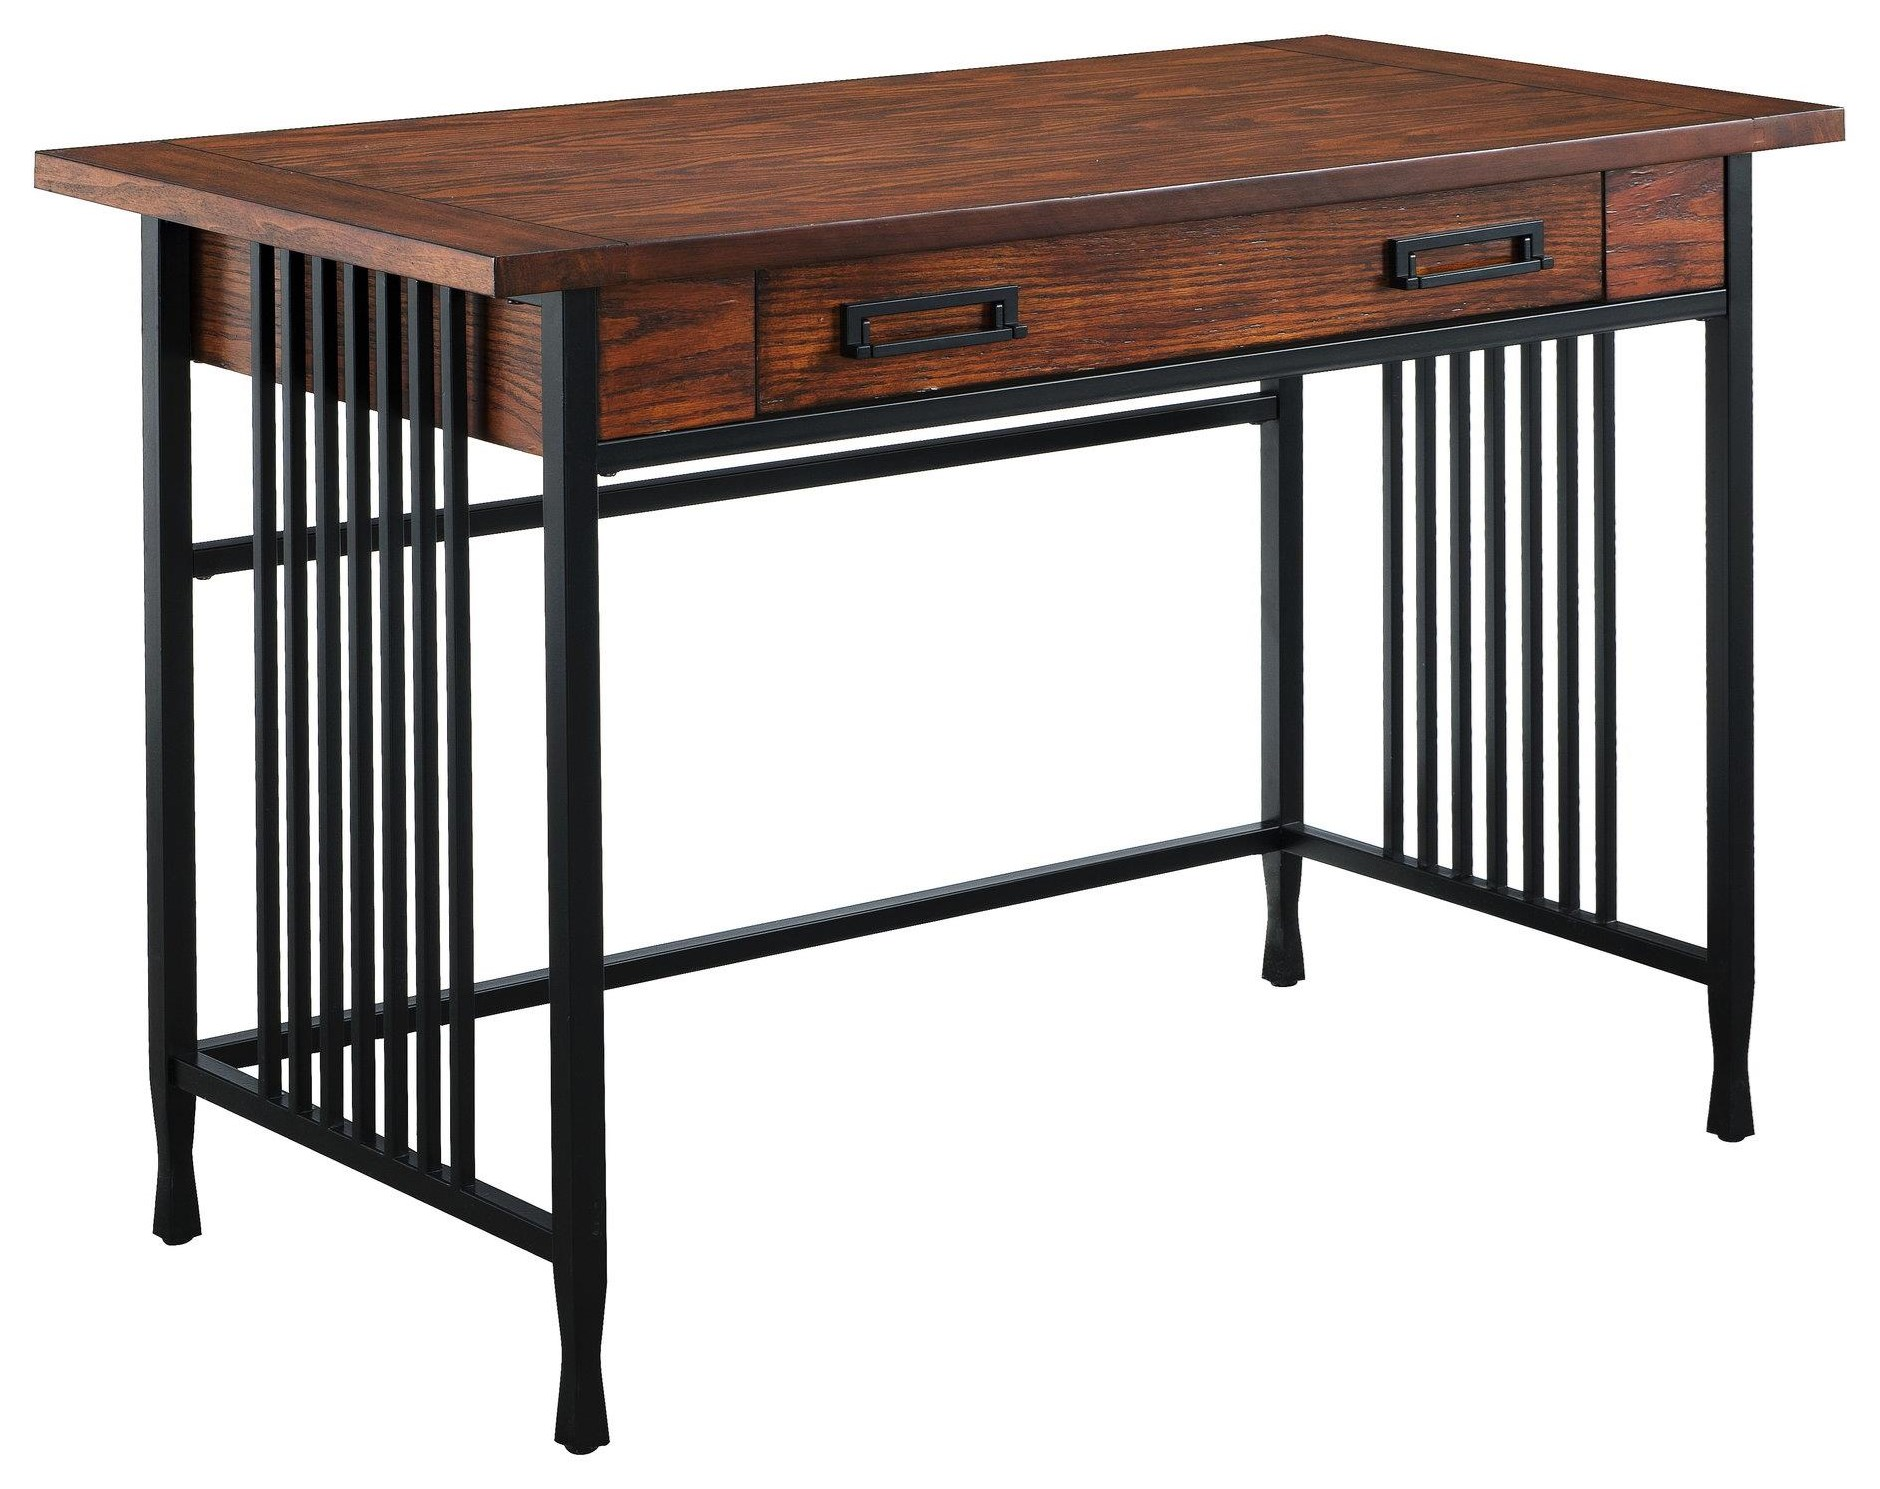 Ironcraft Computer/Writing Desk by Leick Furniture at Crowley Furniture & Mattress